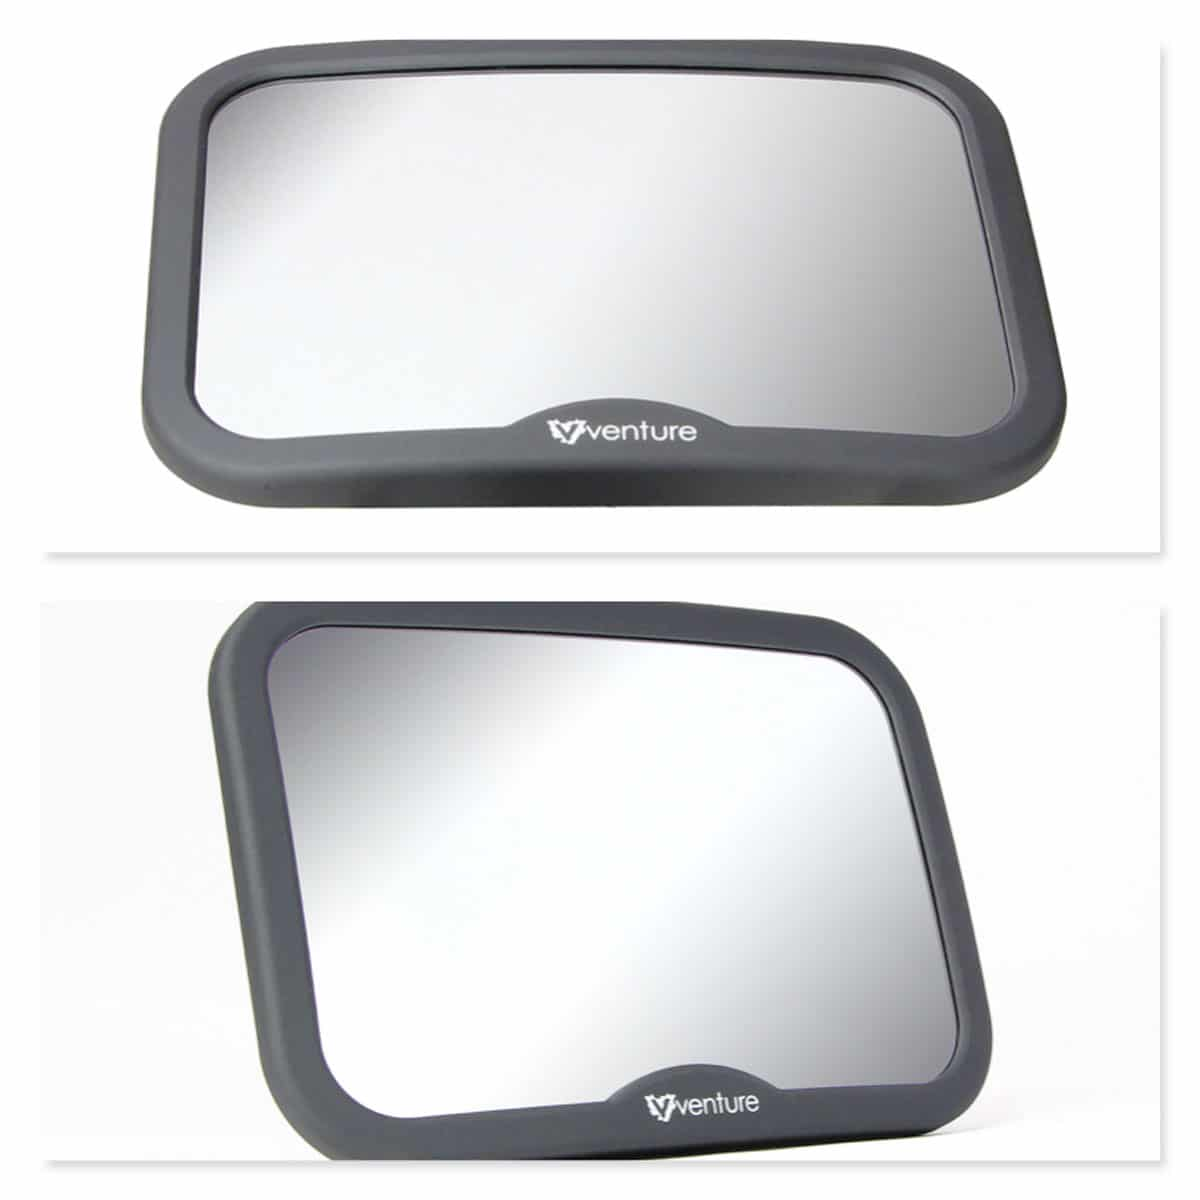 The Venture Acti-Vue car mirror features anti shake moulds to prevent shaking